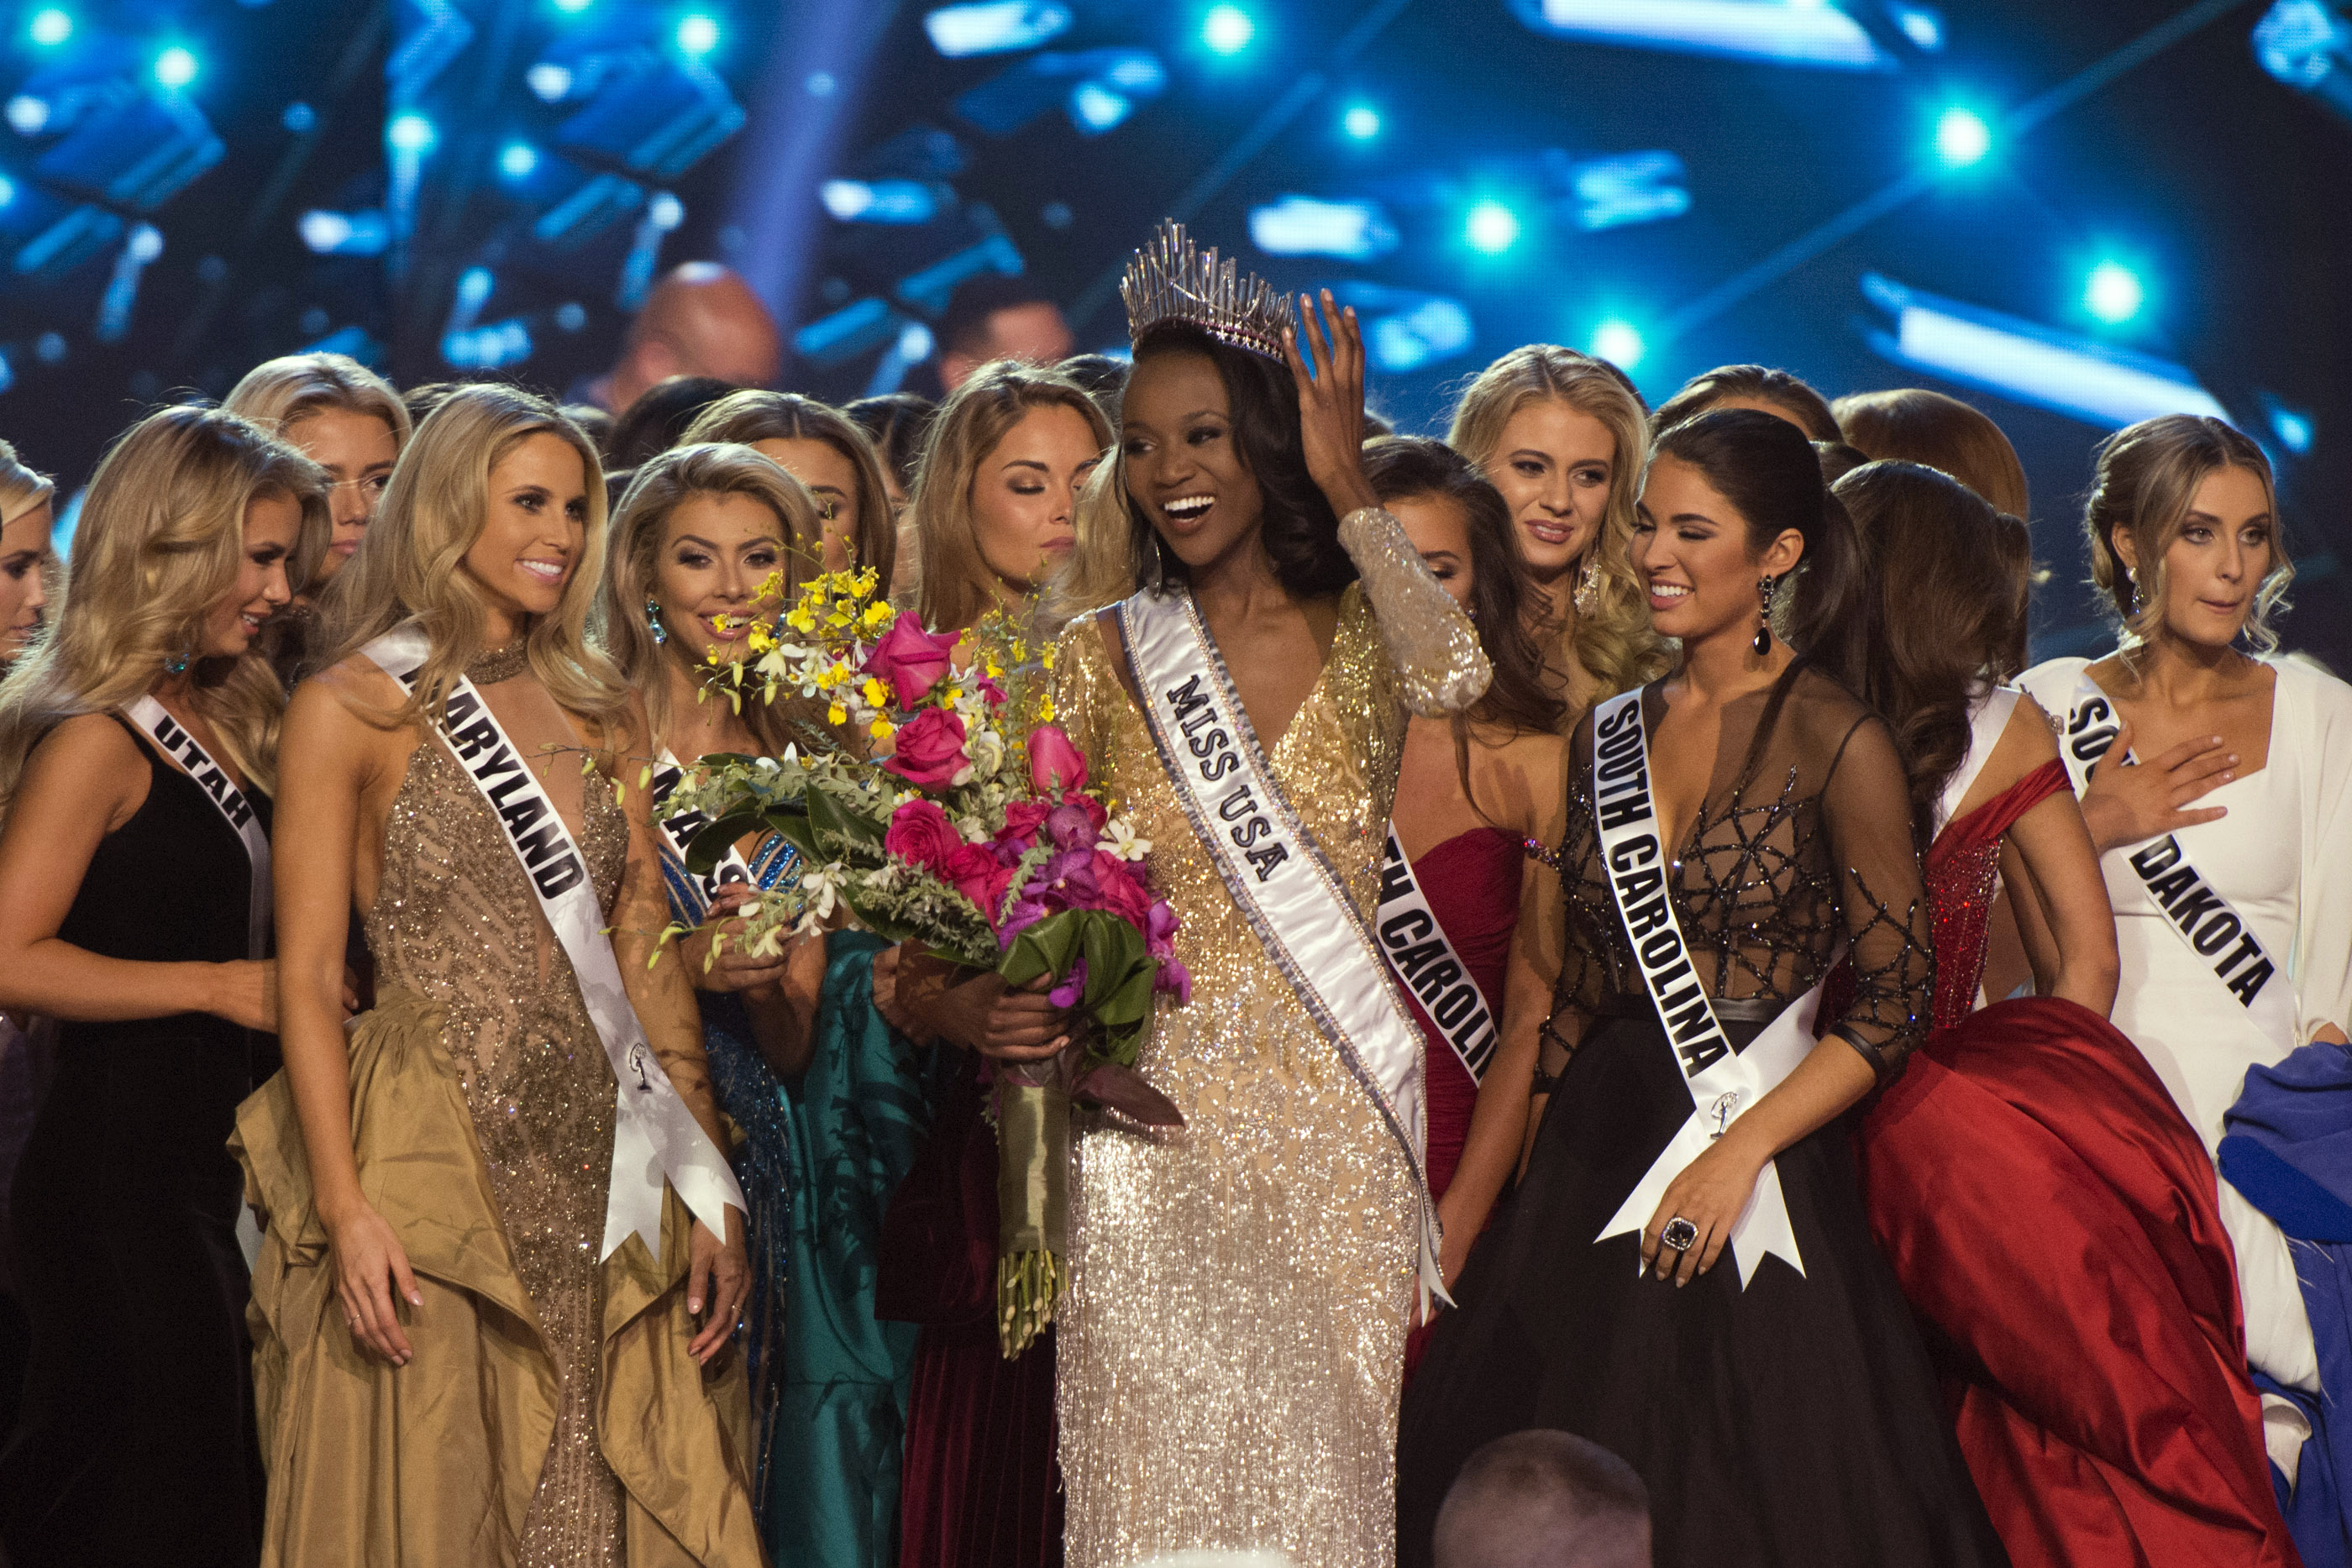 Miss District of Columbia Deshauna Barber smiles after being crowned Miss USA during the 2016 Miss USA pageant in Las Vegas, June 5, 2016